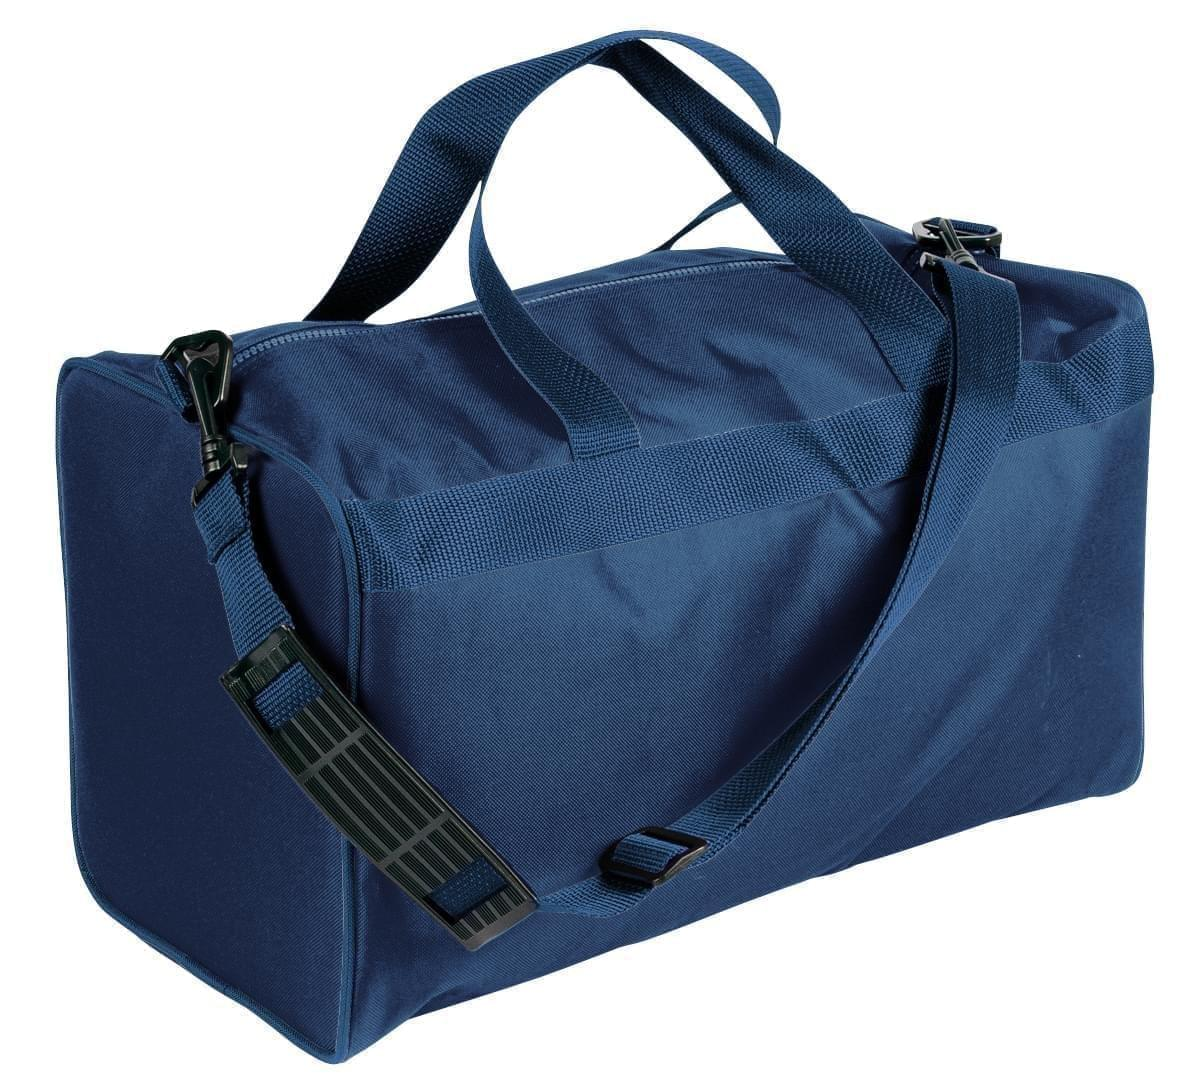 USA Made Nylon Poly Weekend Duffles, Navy-Navy, WLKX31AAWZ